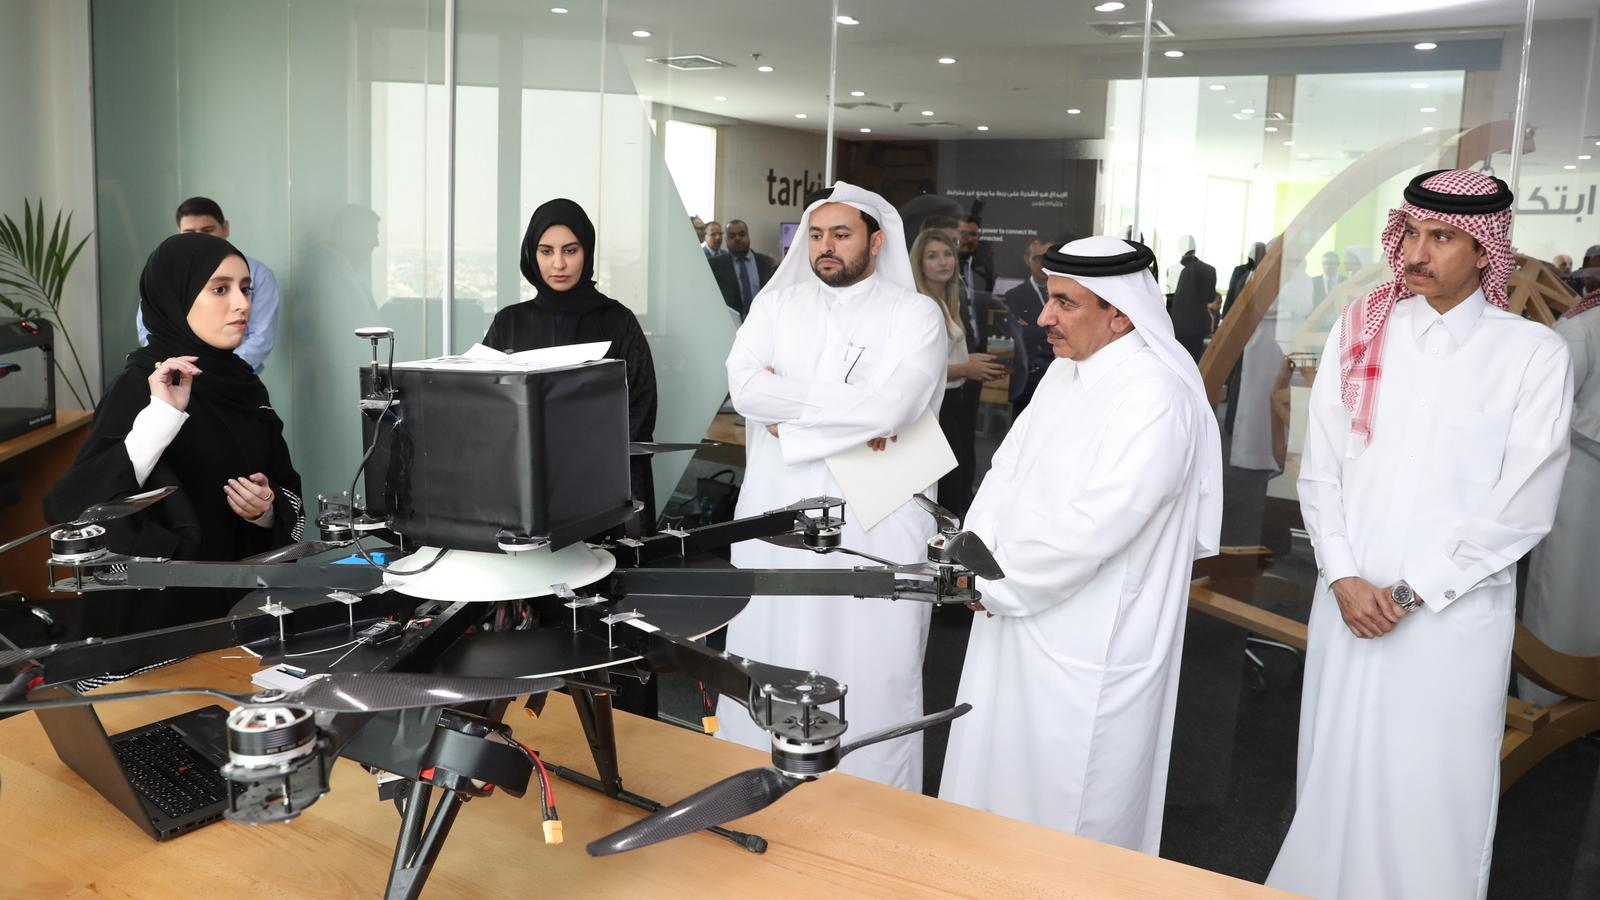 Minister of Transport and Communications Launches TASMU Innovation Lab